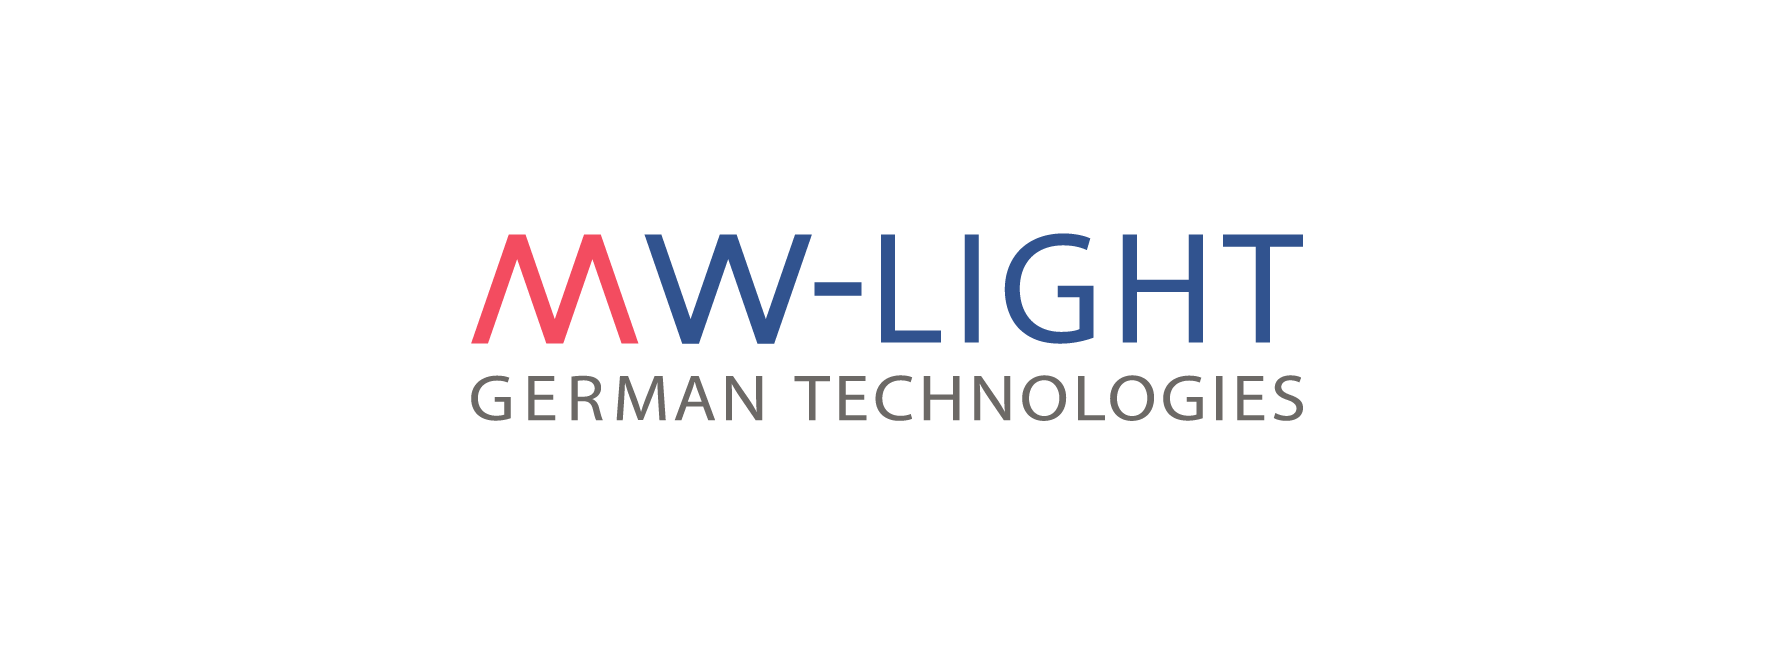 Интернет магазин MW-LIGHT